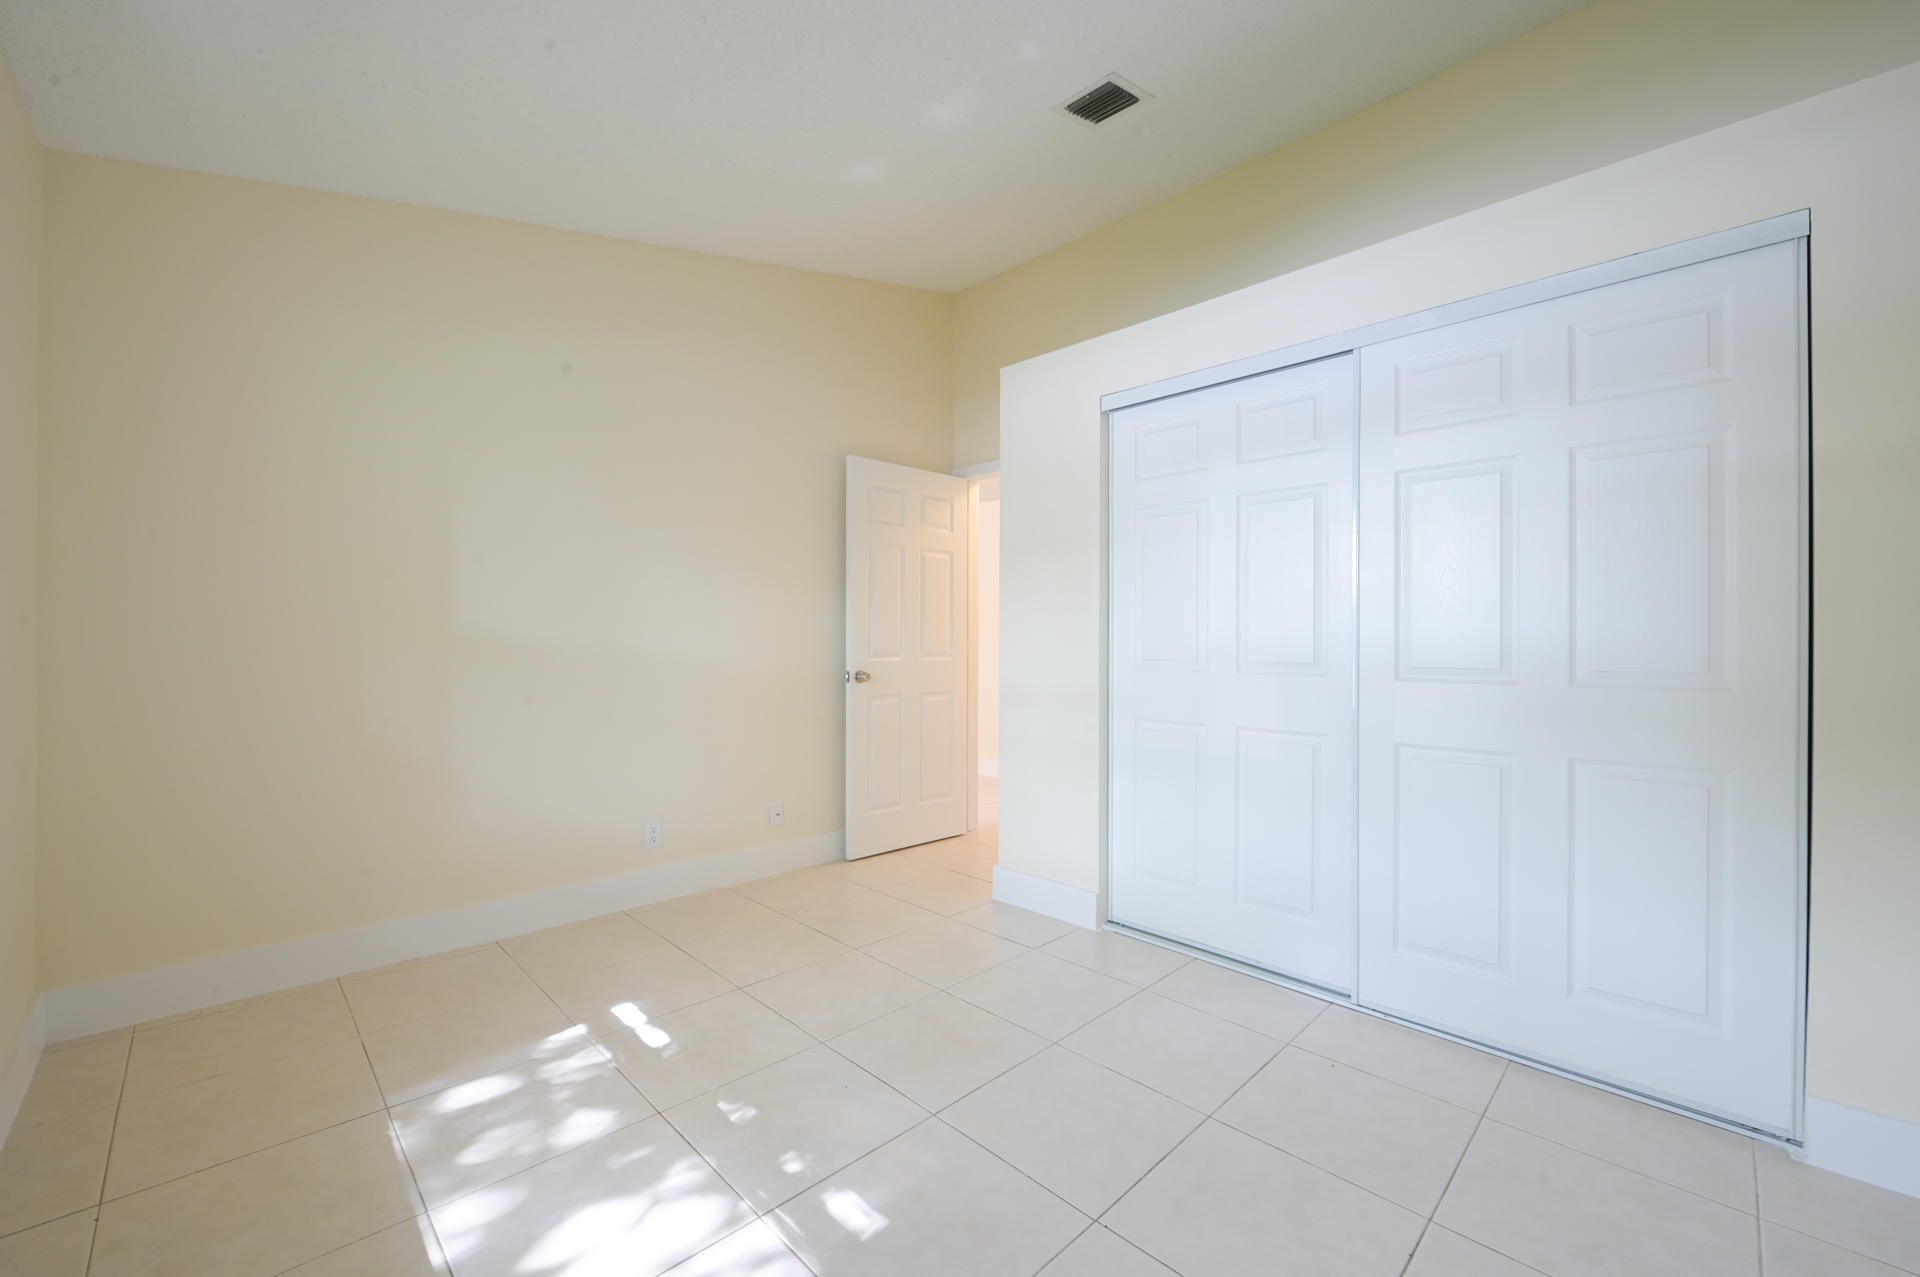 71 Via De Casas Norte Boynton Beach, FL 33426 small photo 15